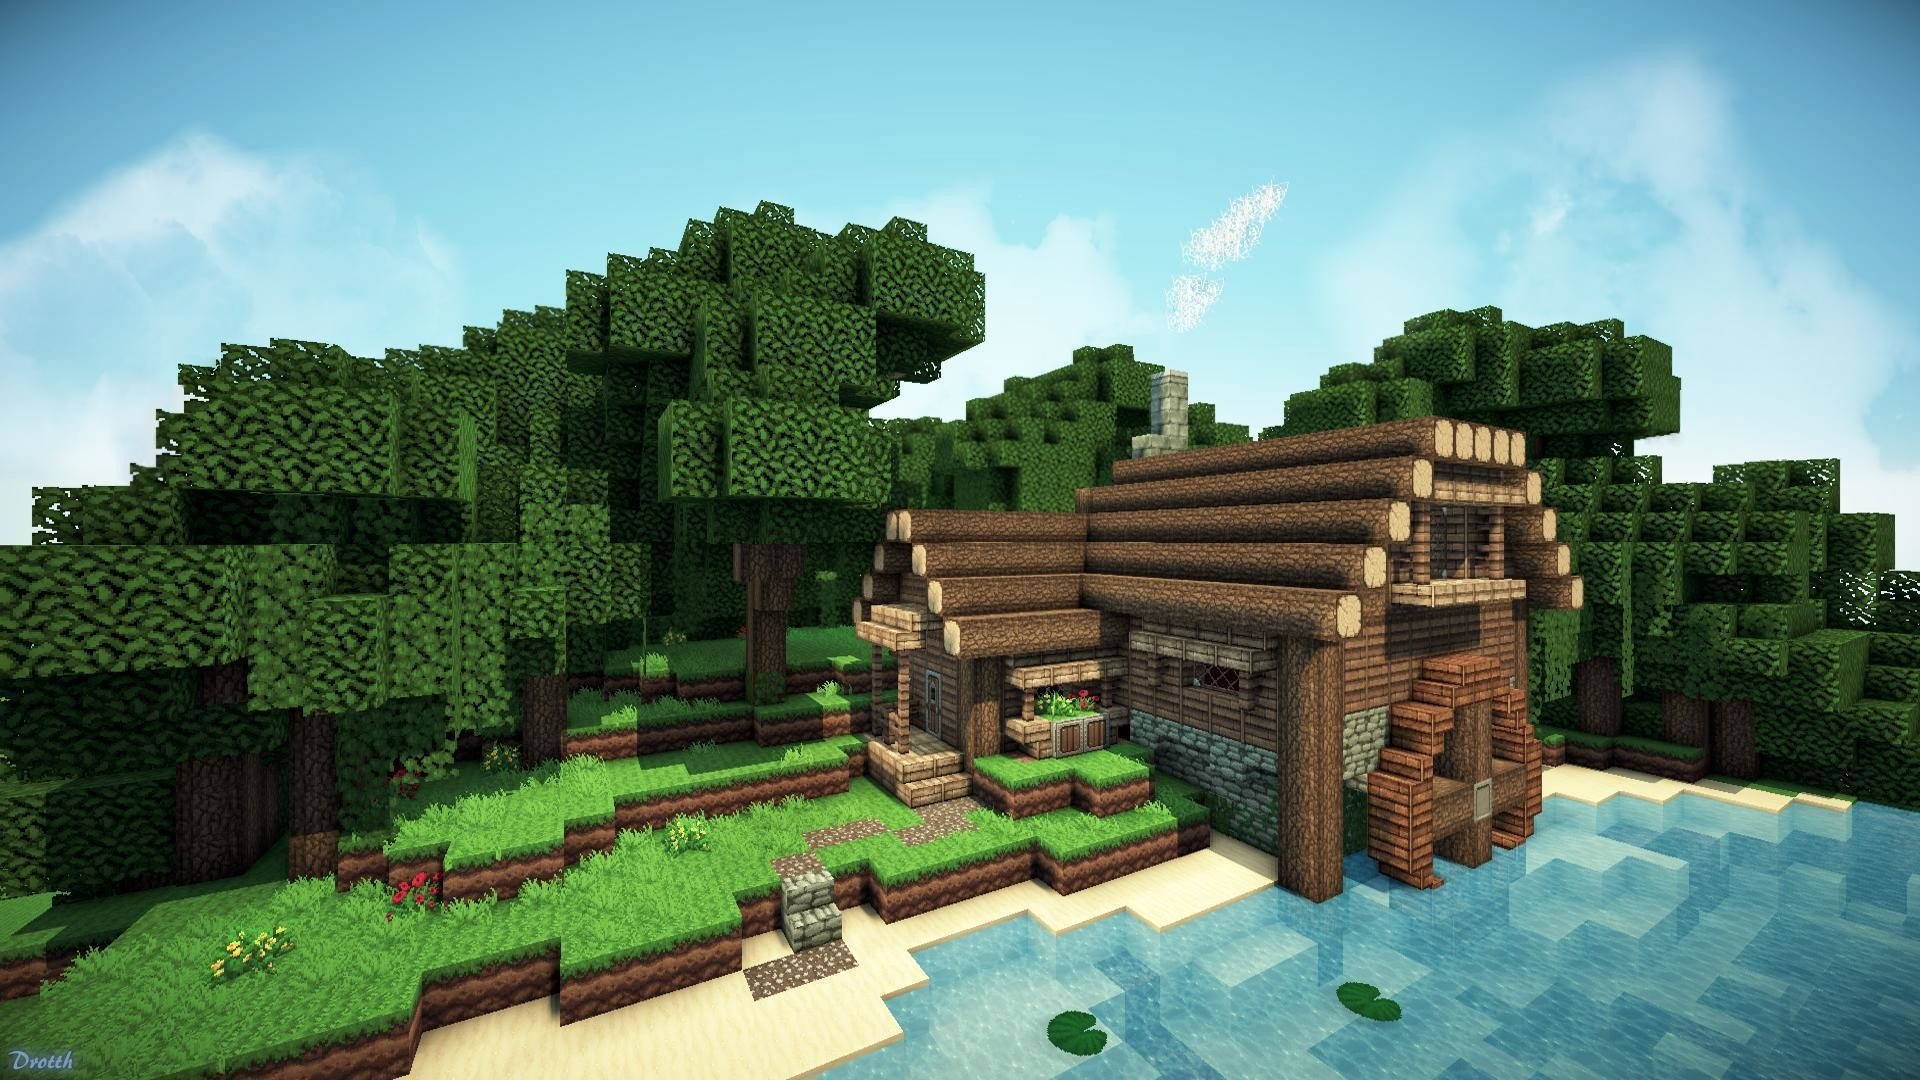 Download Wallpaper Minecraft Thanksgiving - 700977-free-minecraft-backgrounds-1920x1080-hd-1080p  Pictures_222771.jpg